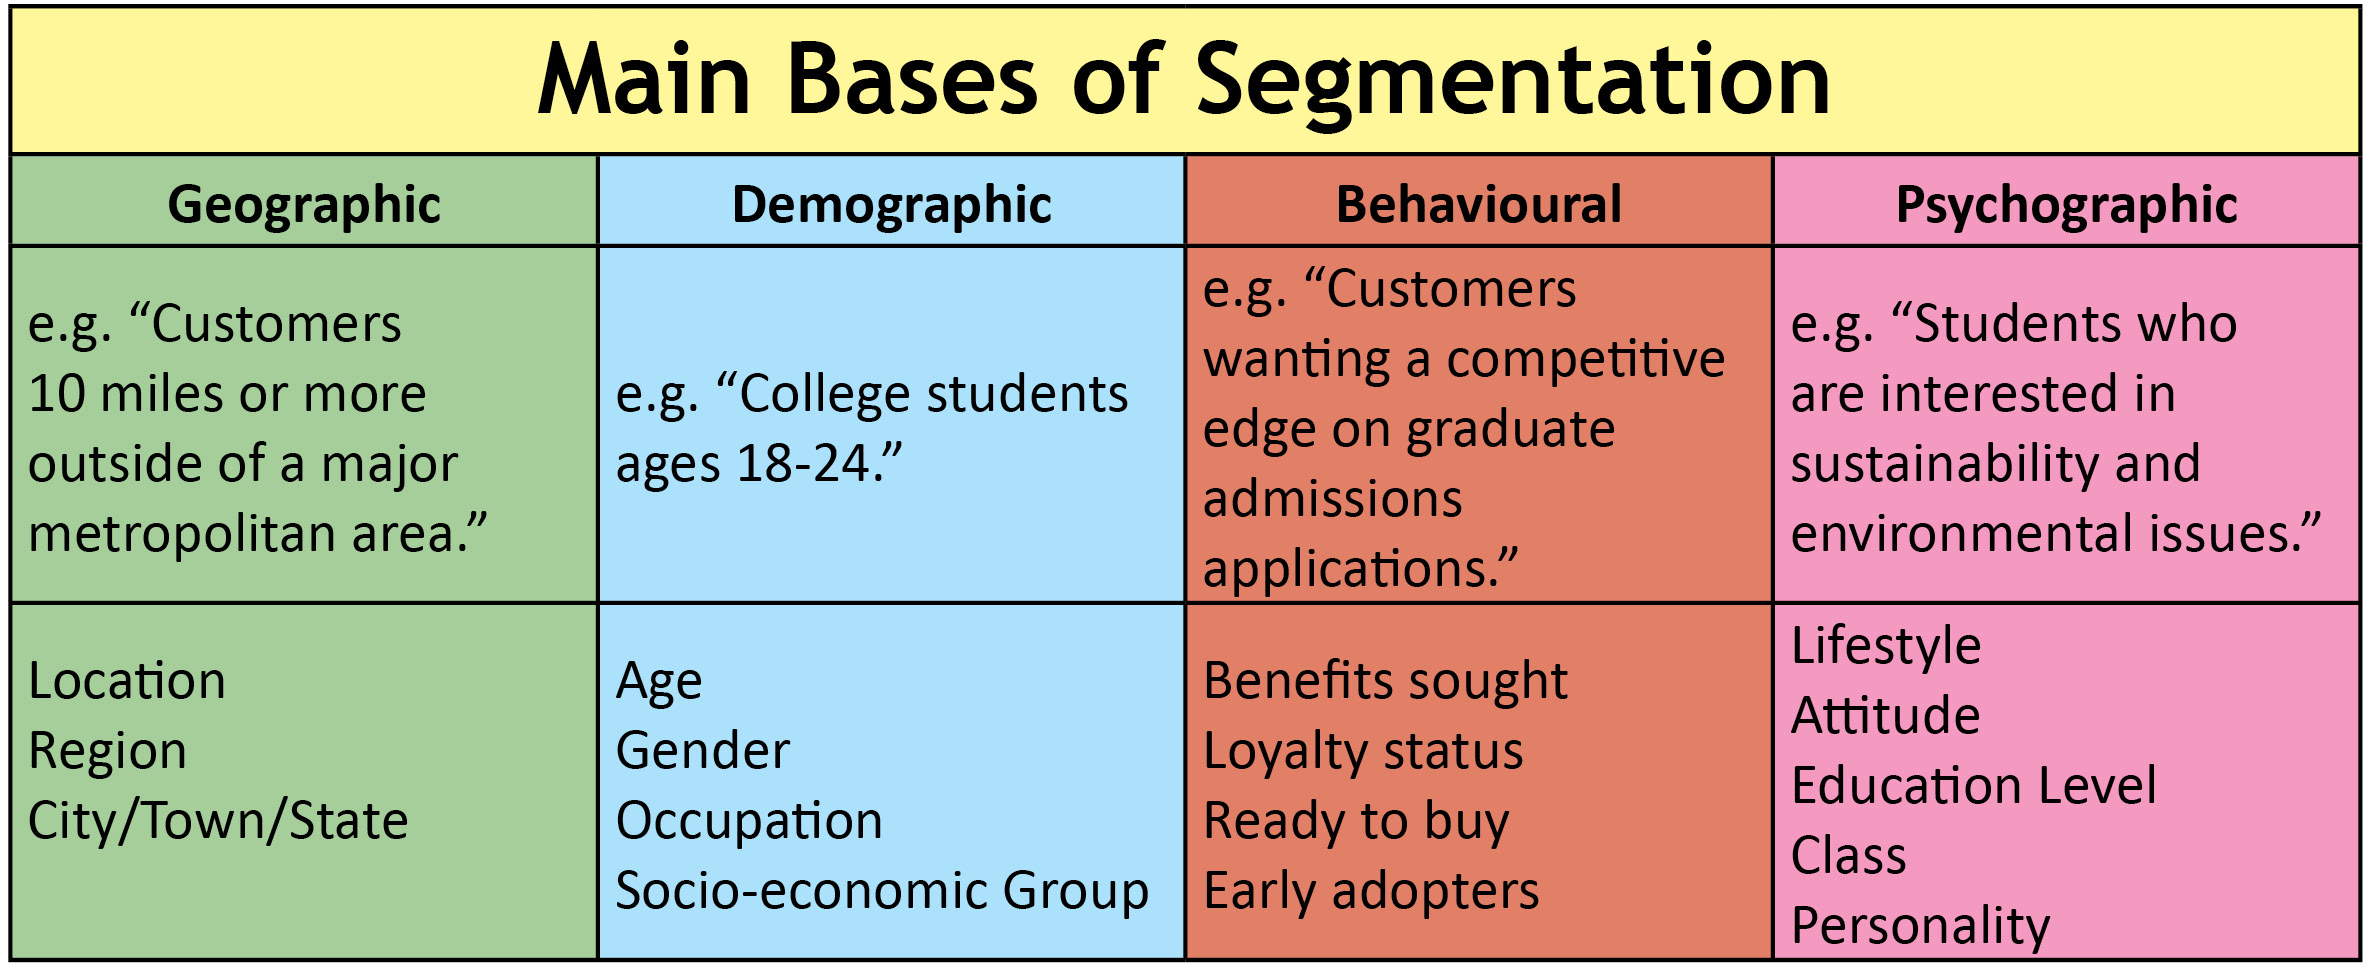 "This figure shows the main bases of segmentation: geographic, demographic, behavioral and psychographic. Under Geographic is ""Customers 10 miles or more outside of a major metropolitan area."" Location Region City/Town/State. Under Demographic is e.g. ""College students ages 18-24."" Age Gender Occupation Socio-economic Group. Under Behavioral is e.g. ""Customers wanting a competitive edge on graduate admissions applications."" Benefits sought Loyalty status Ready to buy Early adopters. Under Psychographic is e.g. ""Students who are interested in sustainability and environmental issues."" Lifestyle Attitude Education Level Class Personality"